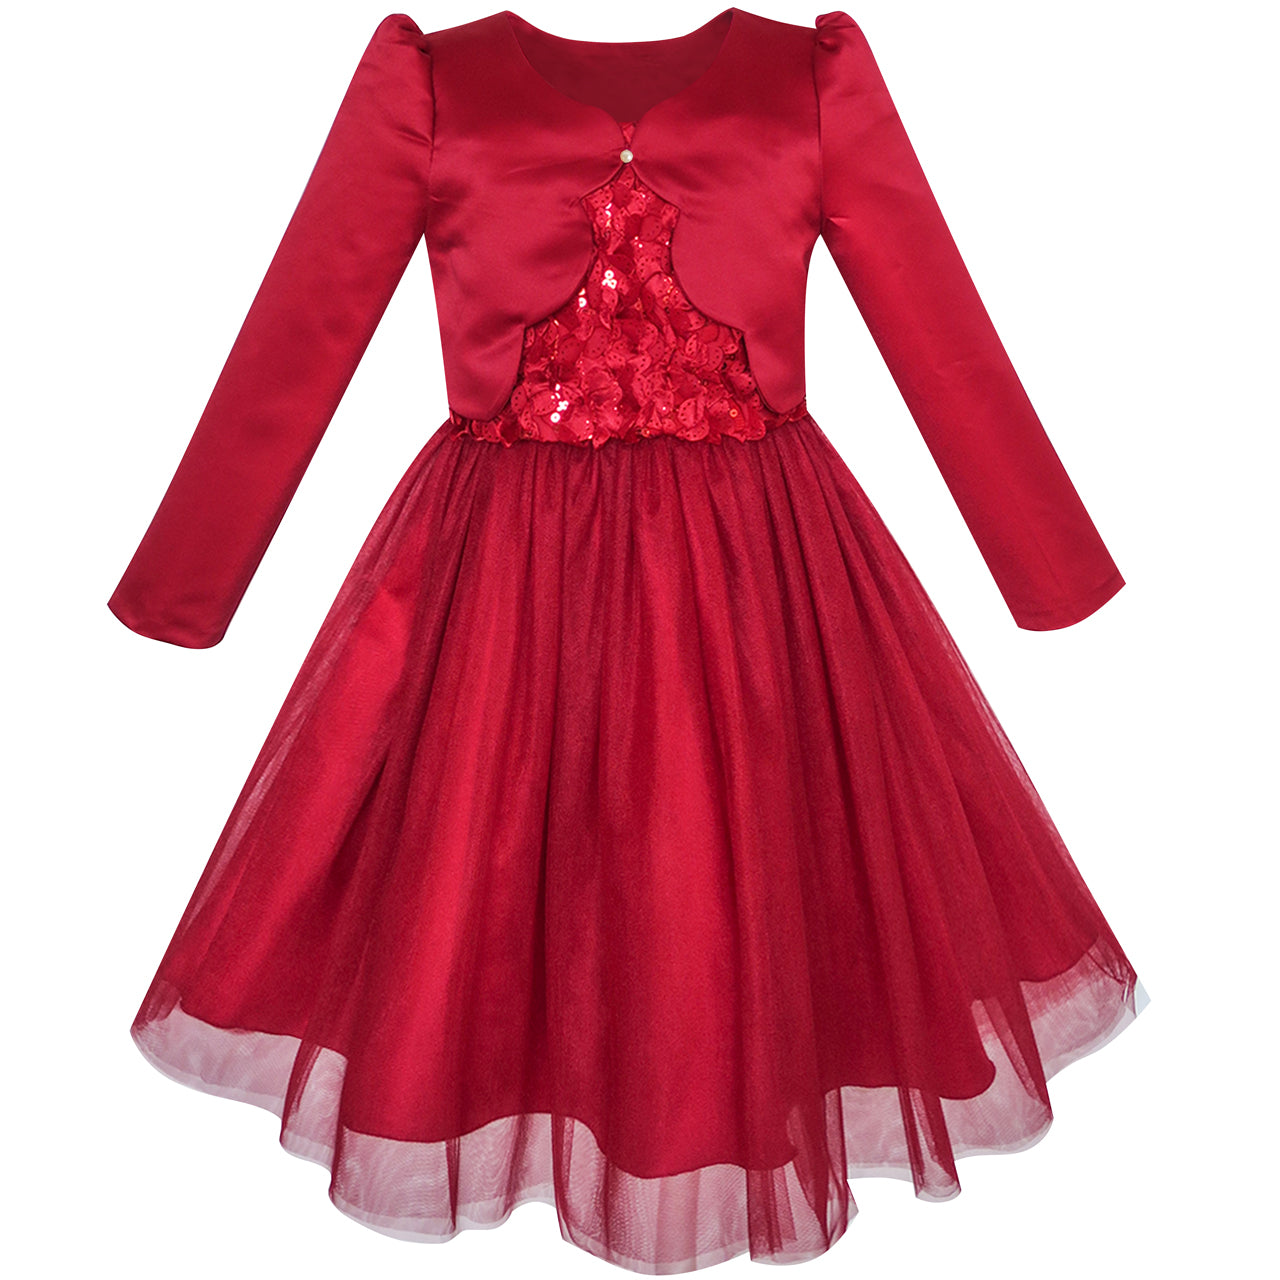 Girls Dresses in Red Color | Sunny Fashion